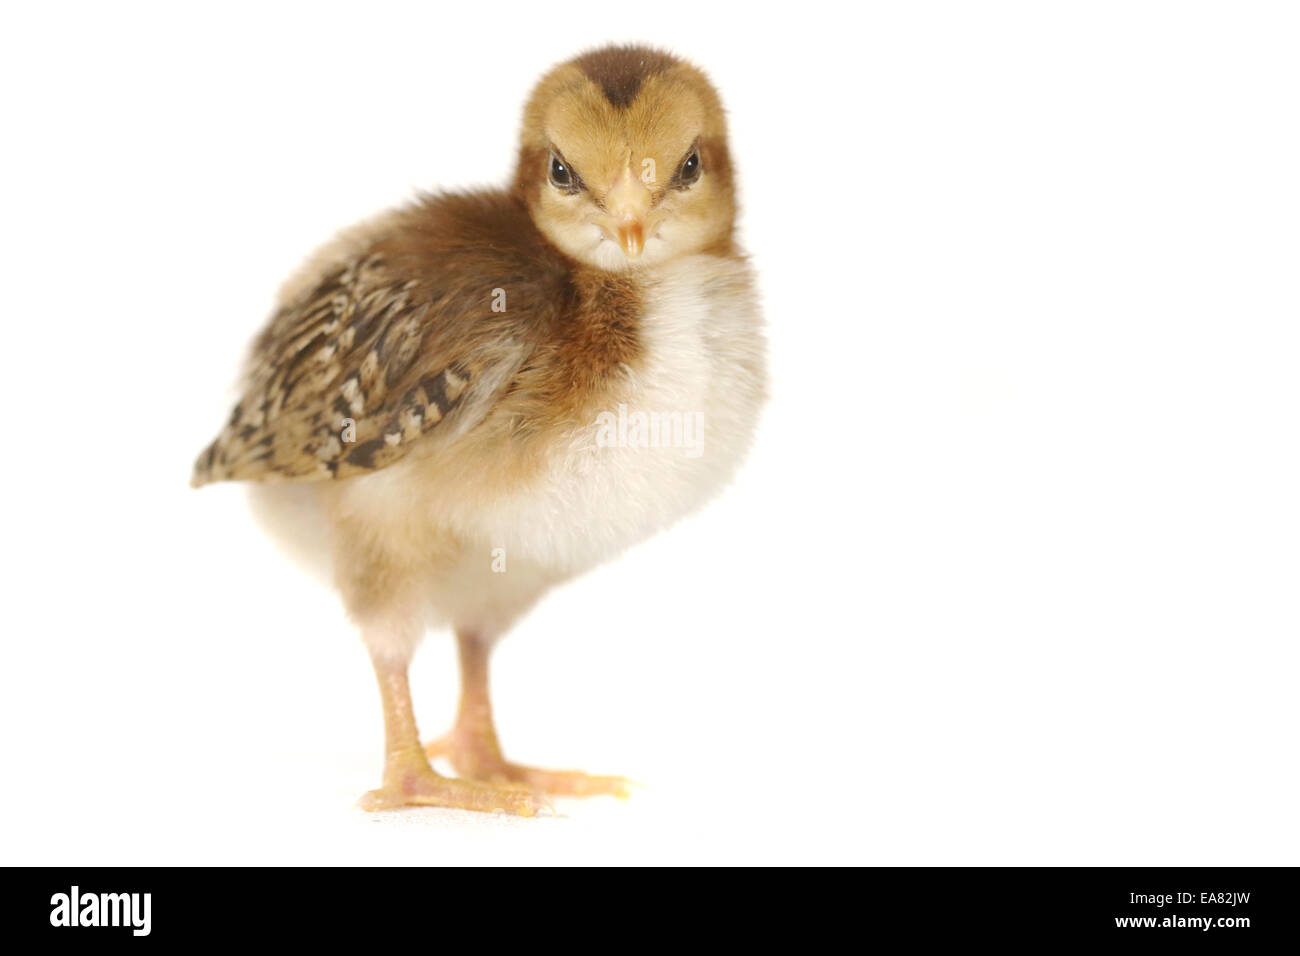 Cute Baby Chick Chicken on White Background - Stock Image